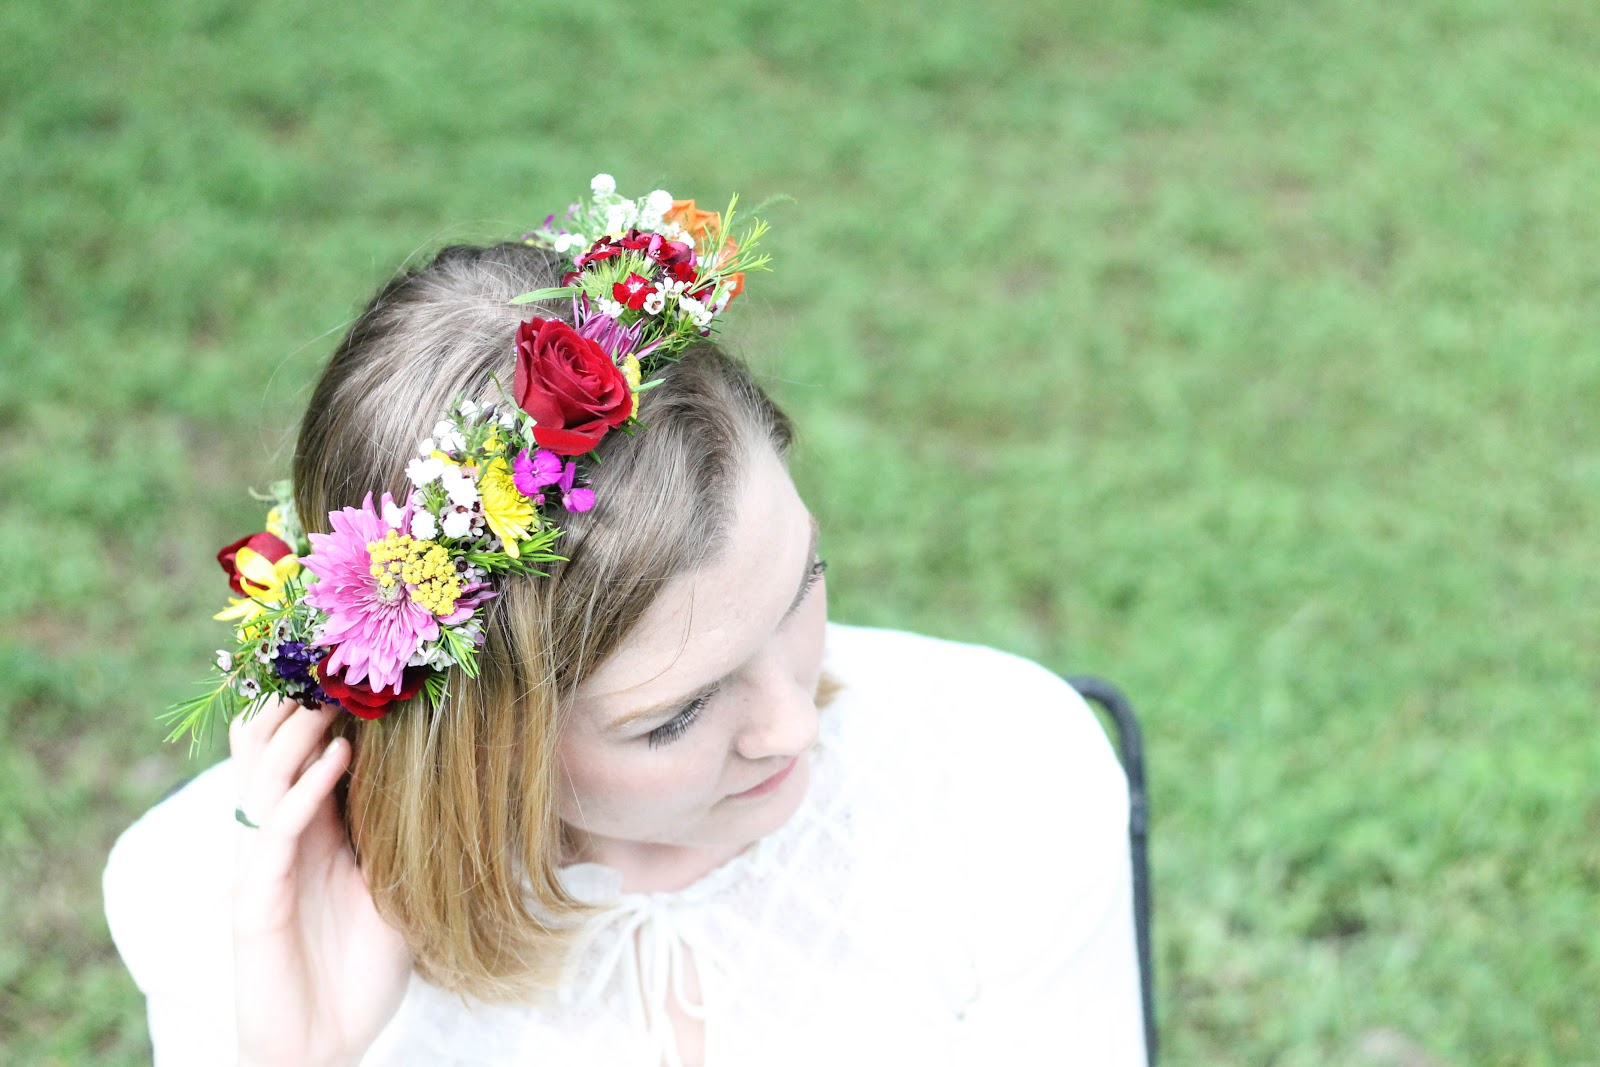 Diy flower crowns minnie muse i hope you all enjoyed this diyybe there will be more diy posts in the future here but for now enjoy the sheer beauty of flowers and flower crowns izmirmasajfo Images